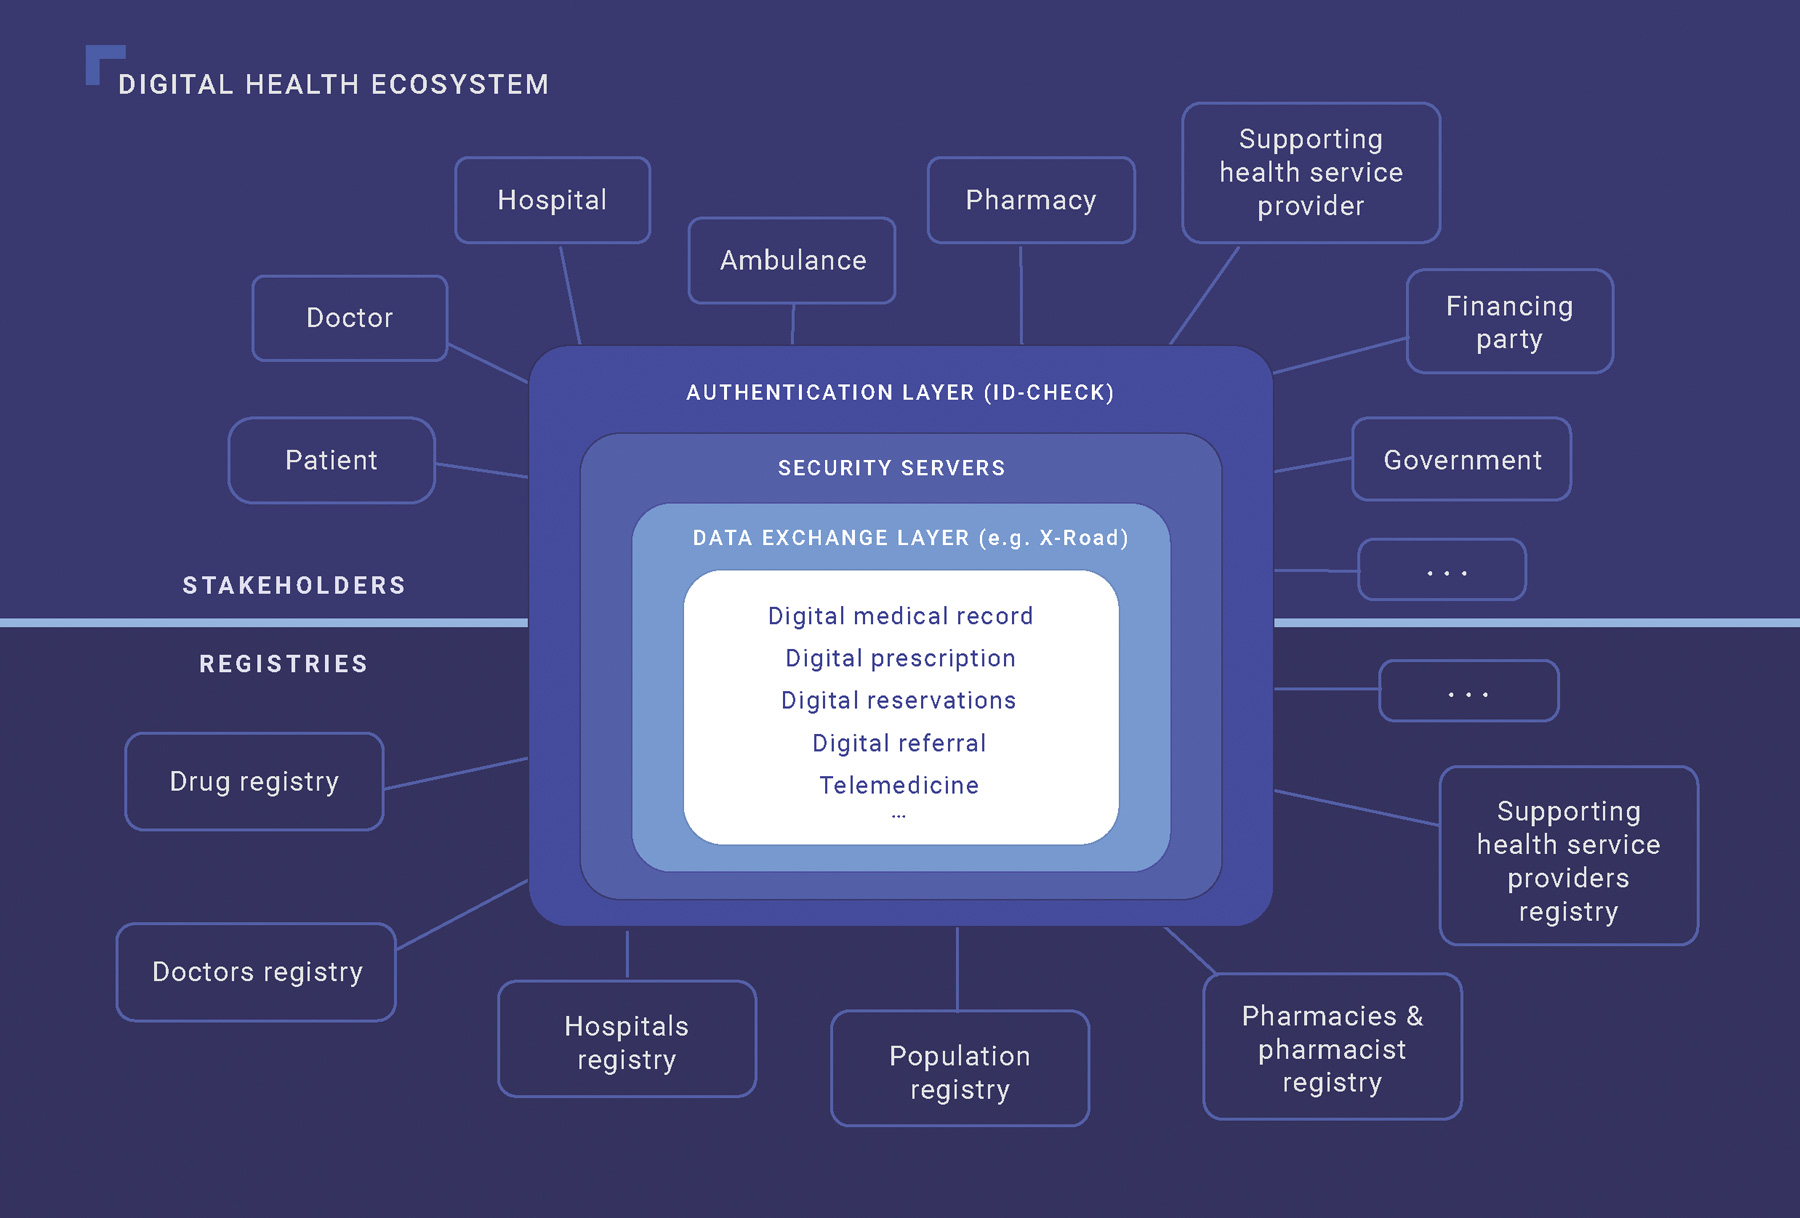 Digital Health Ecosystem